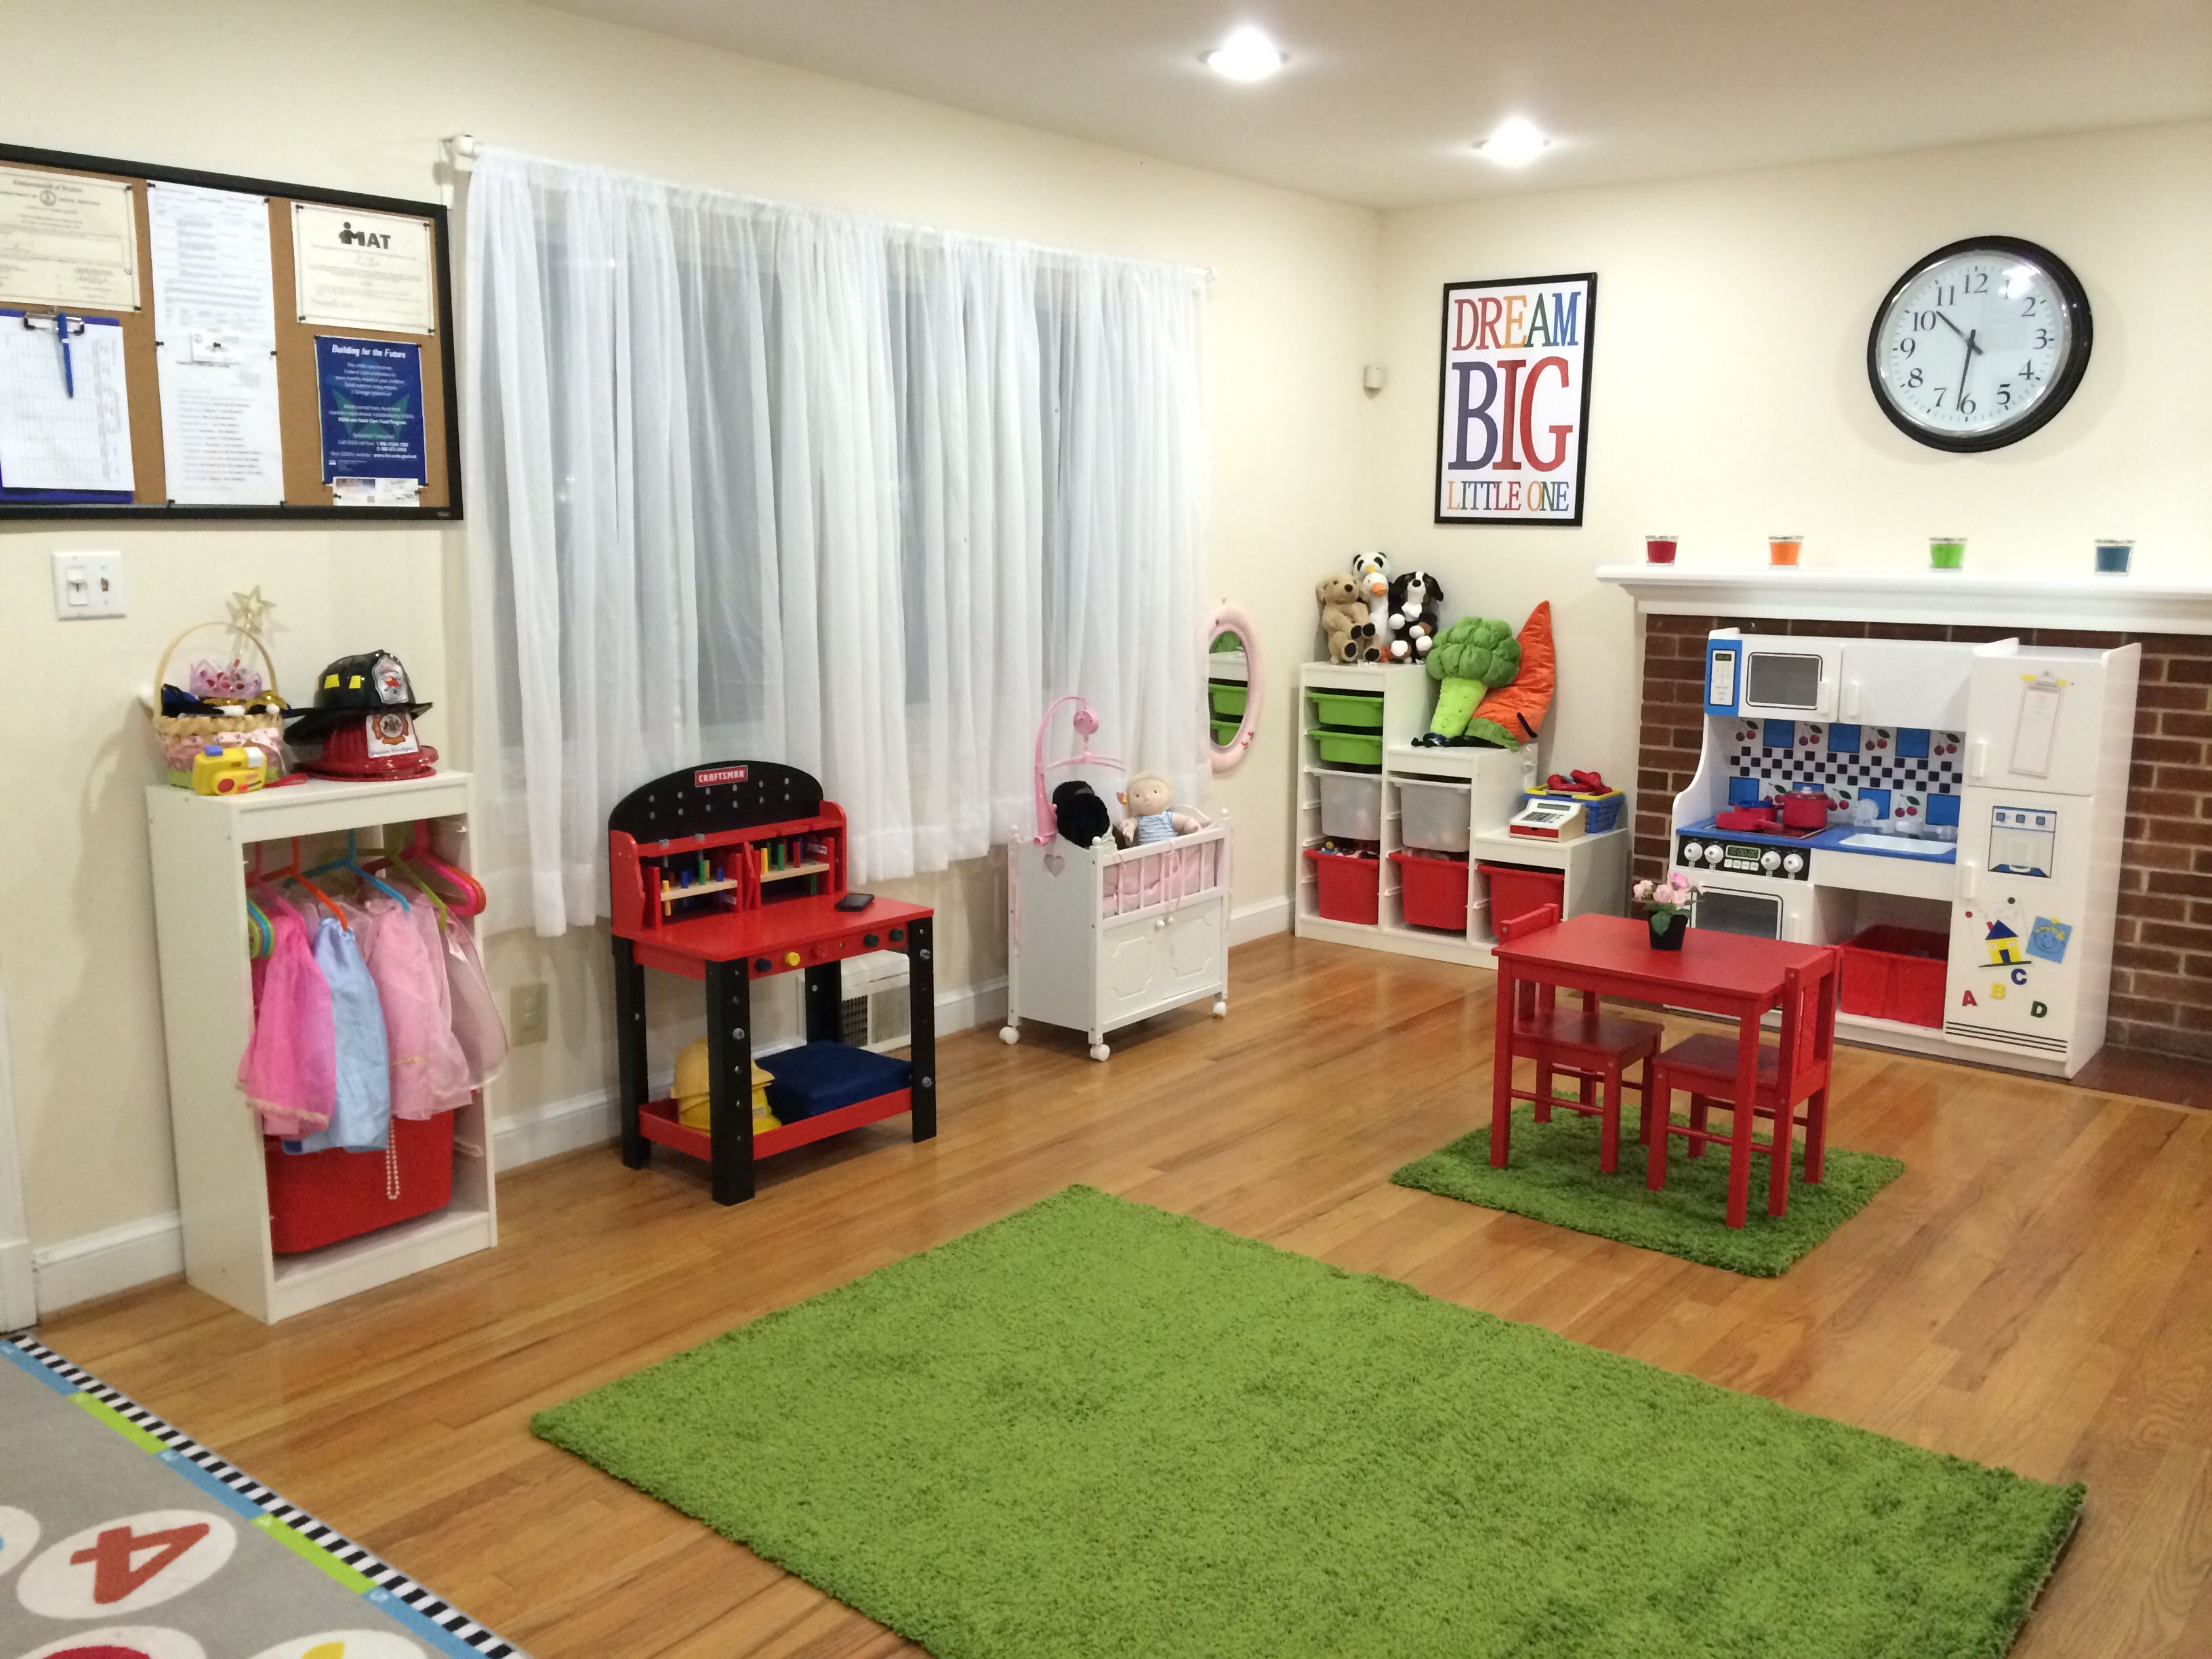 New Home Daycare Setup A Lot Of It Was Pinterest Inspired - Home daycare design ideas